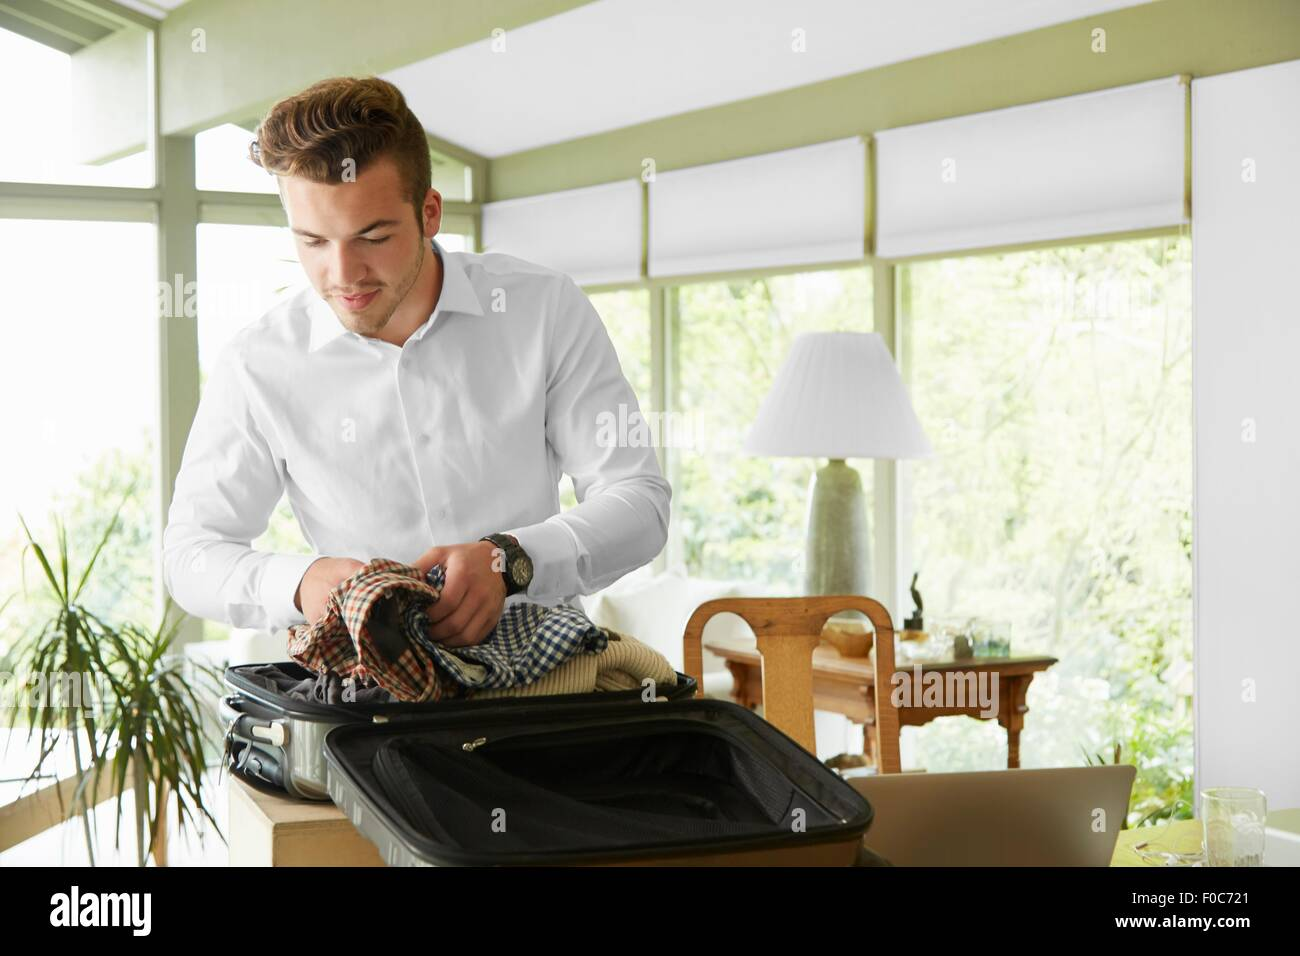 Businessman packing suitcase at home - Stock Image